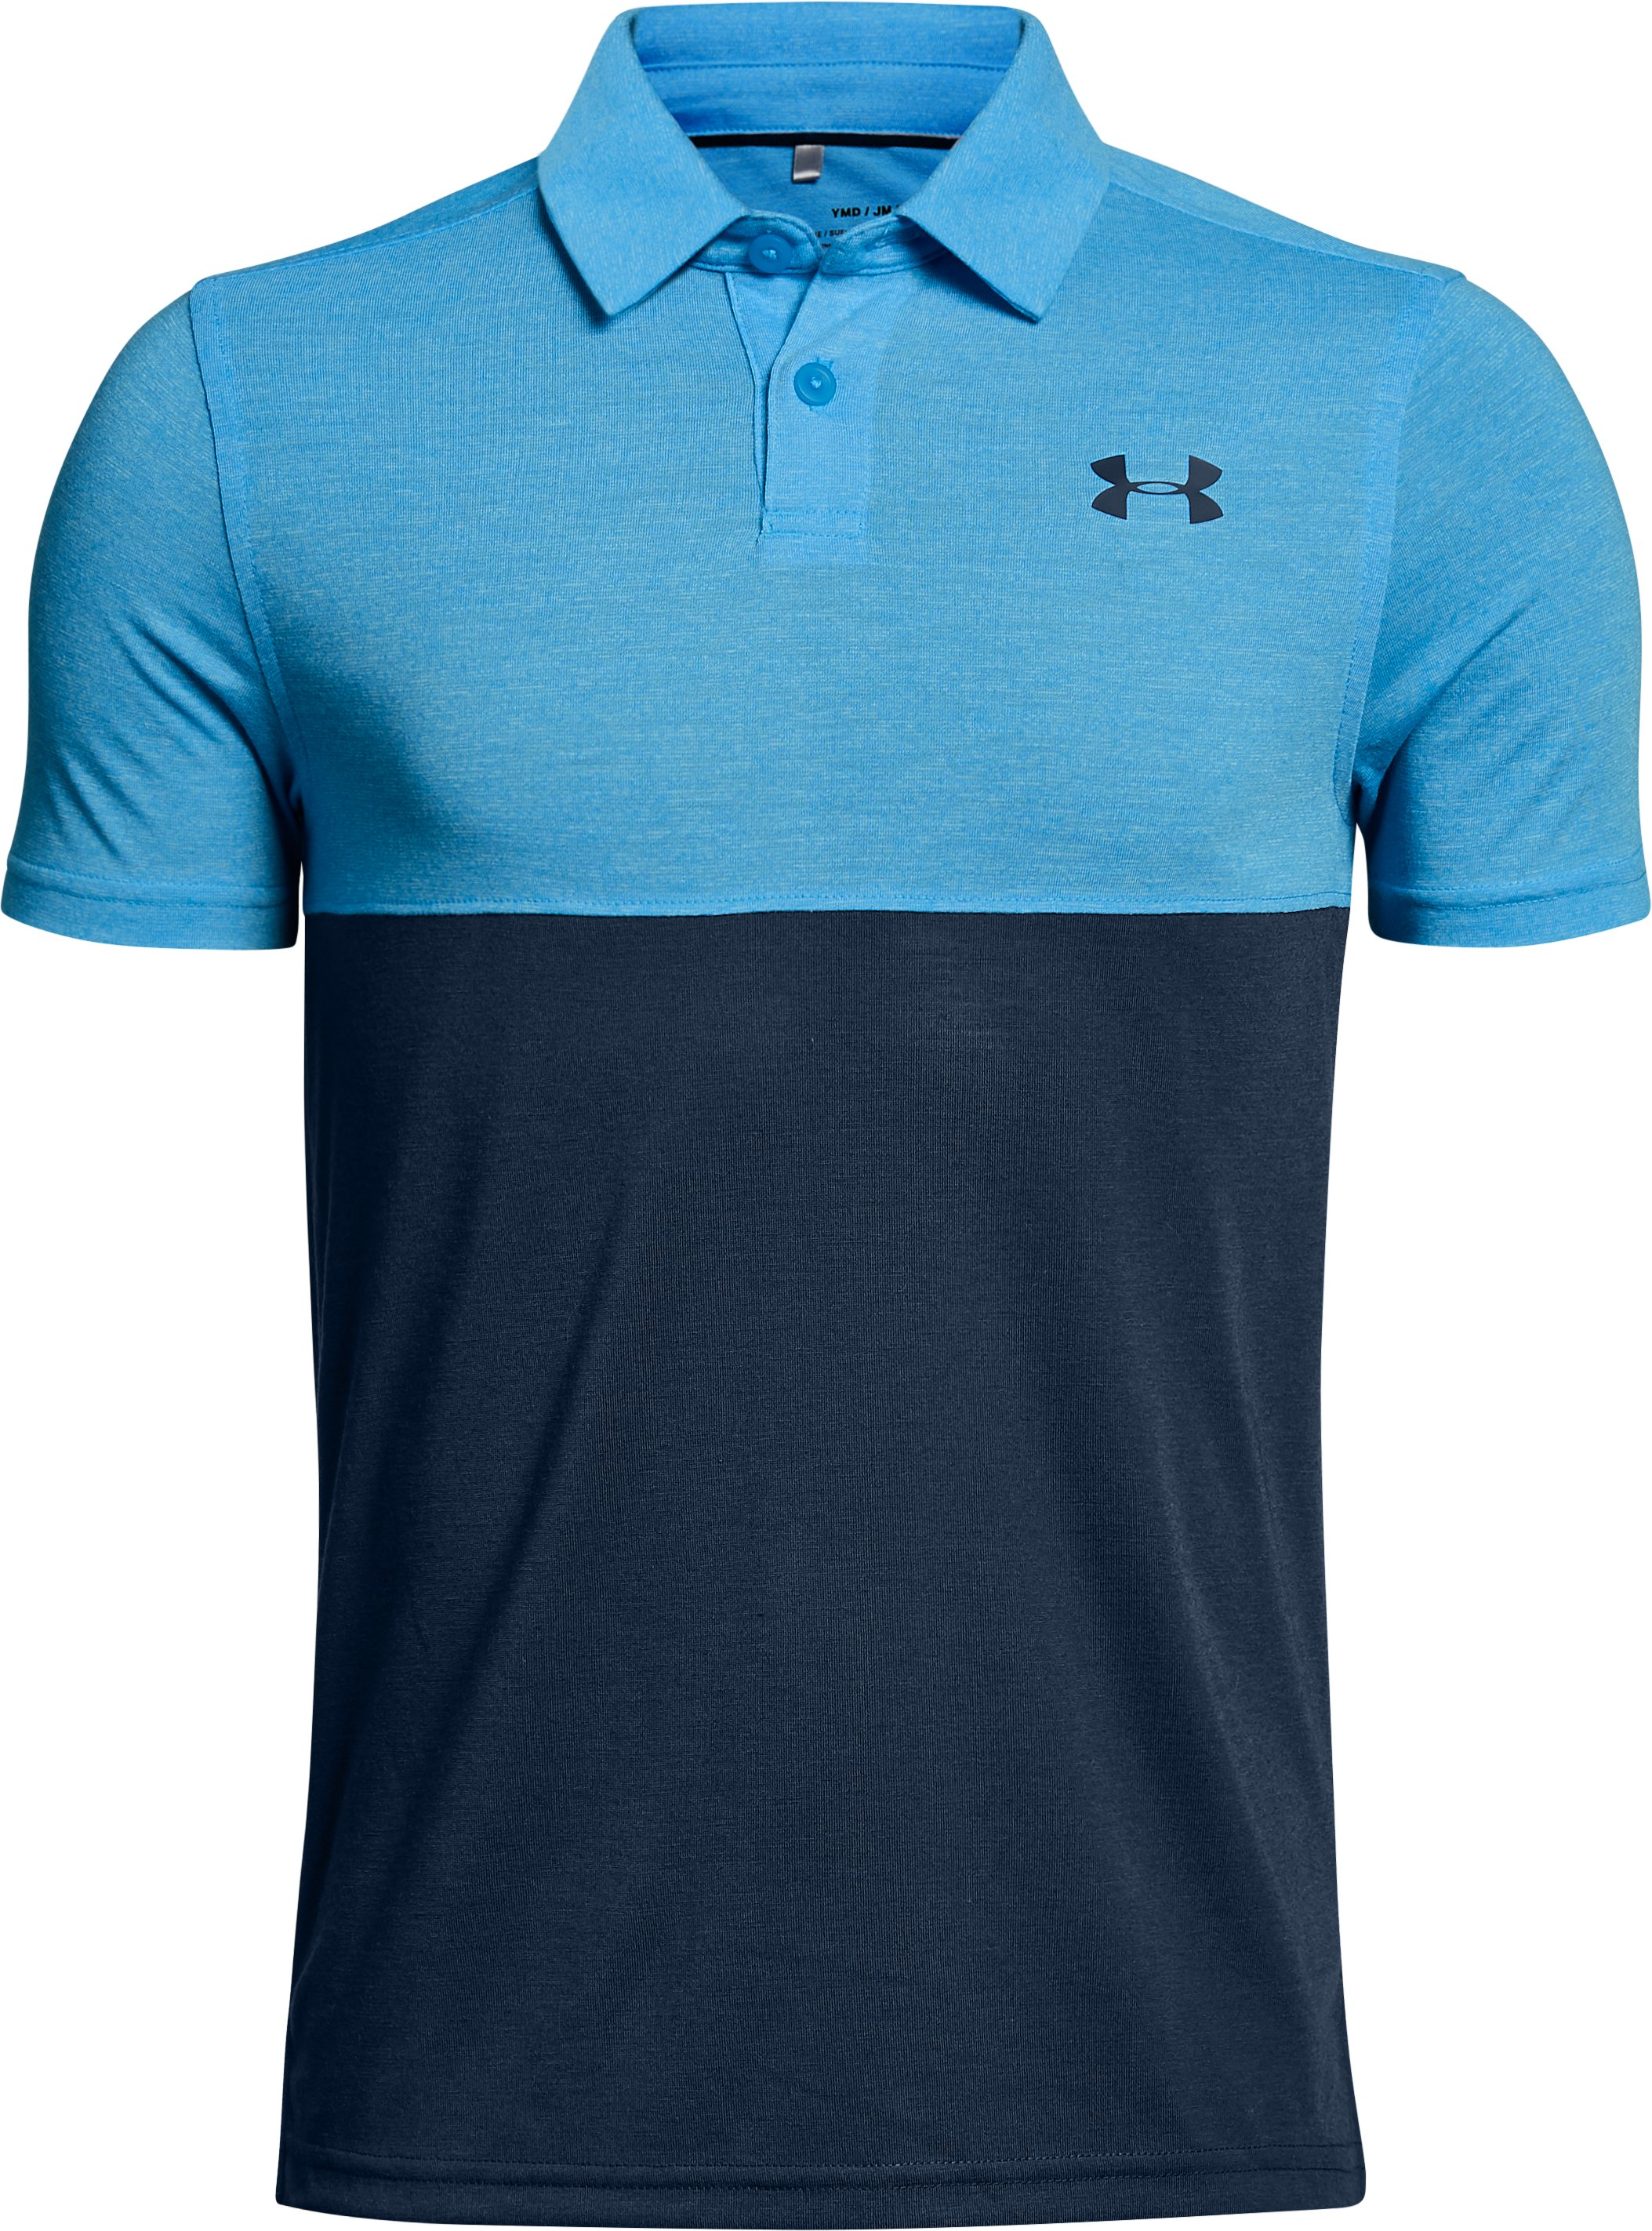 Boys' UA Threadborne Blocked Polo, CANOE BLUE